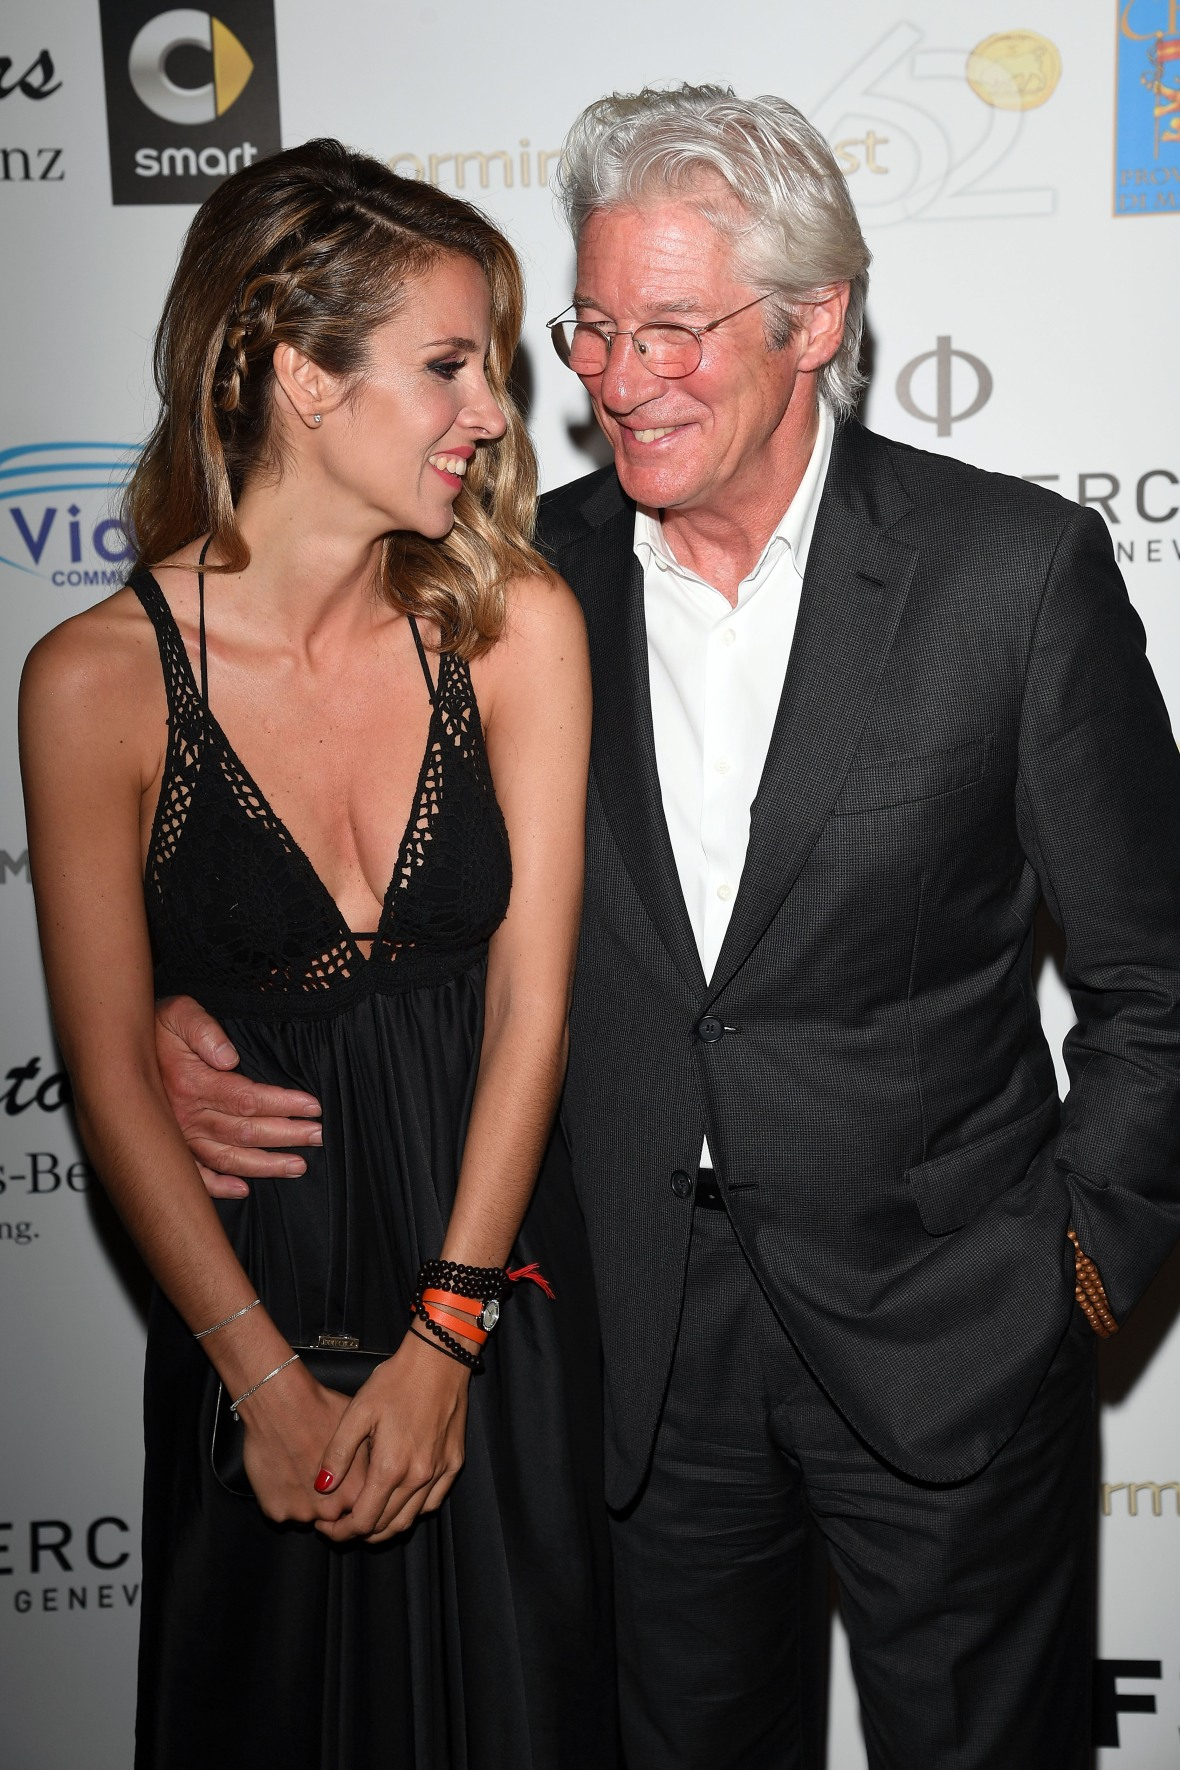 richard gere and alejandra silva getty images